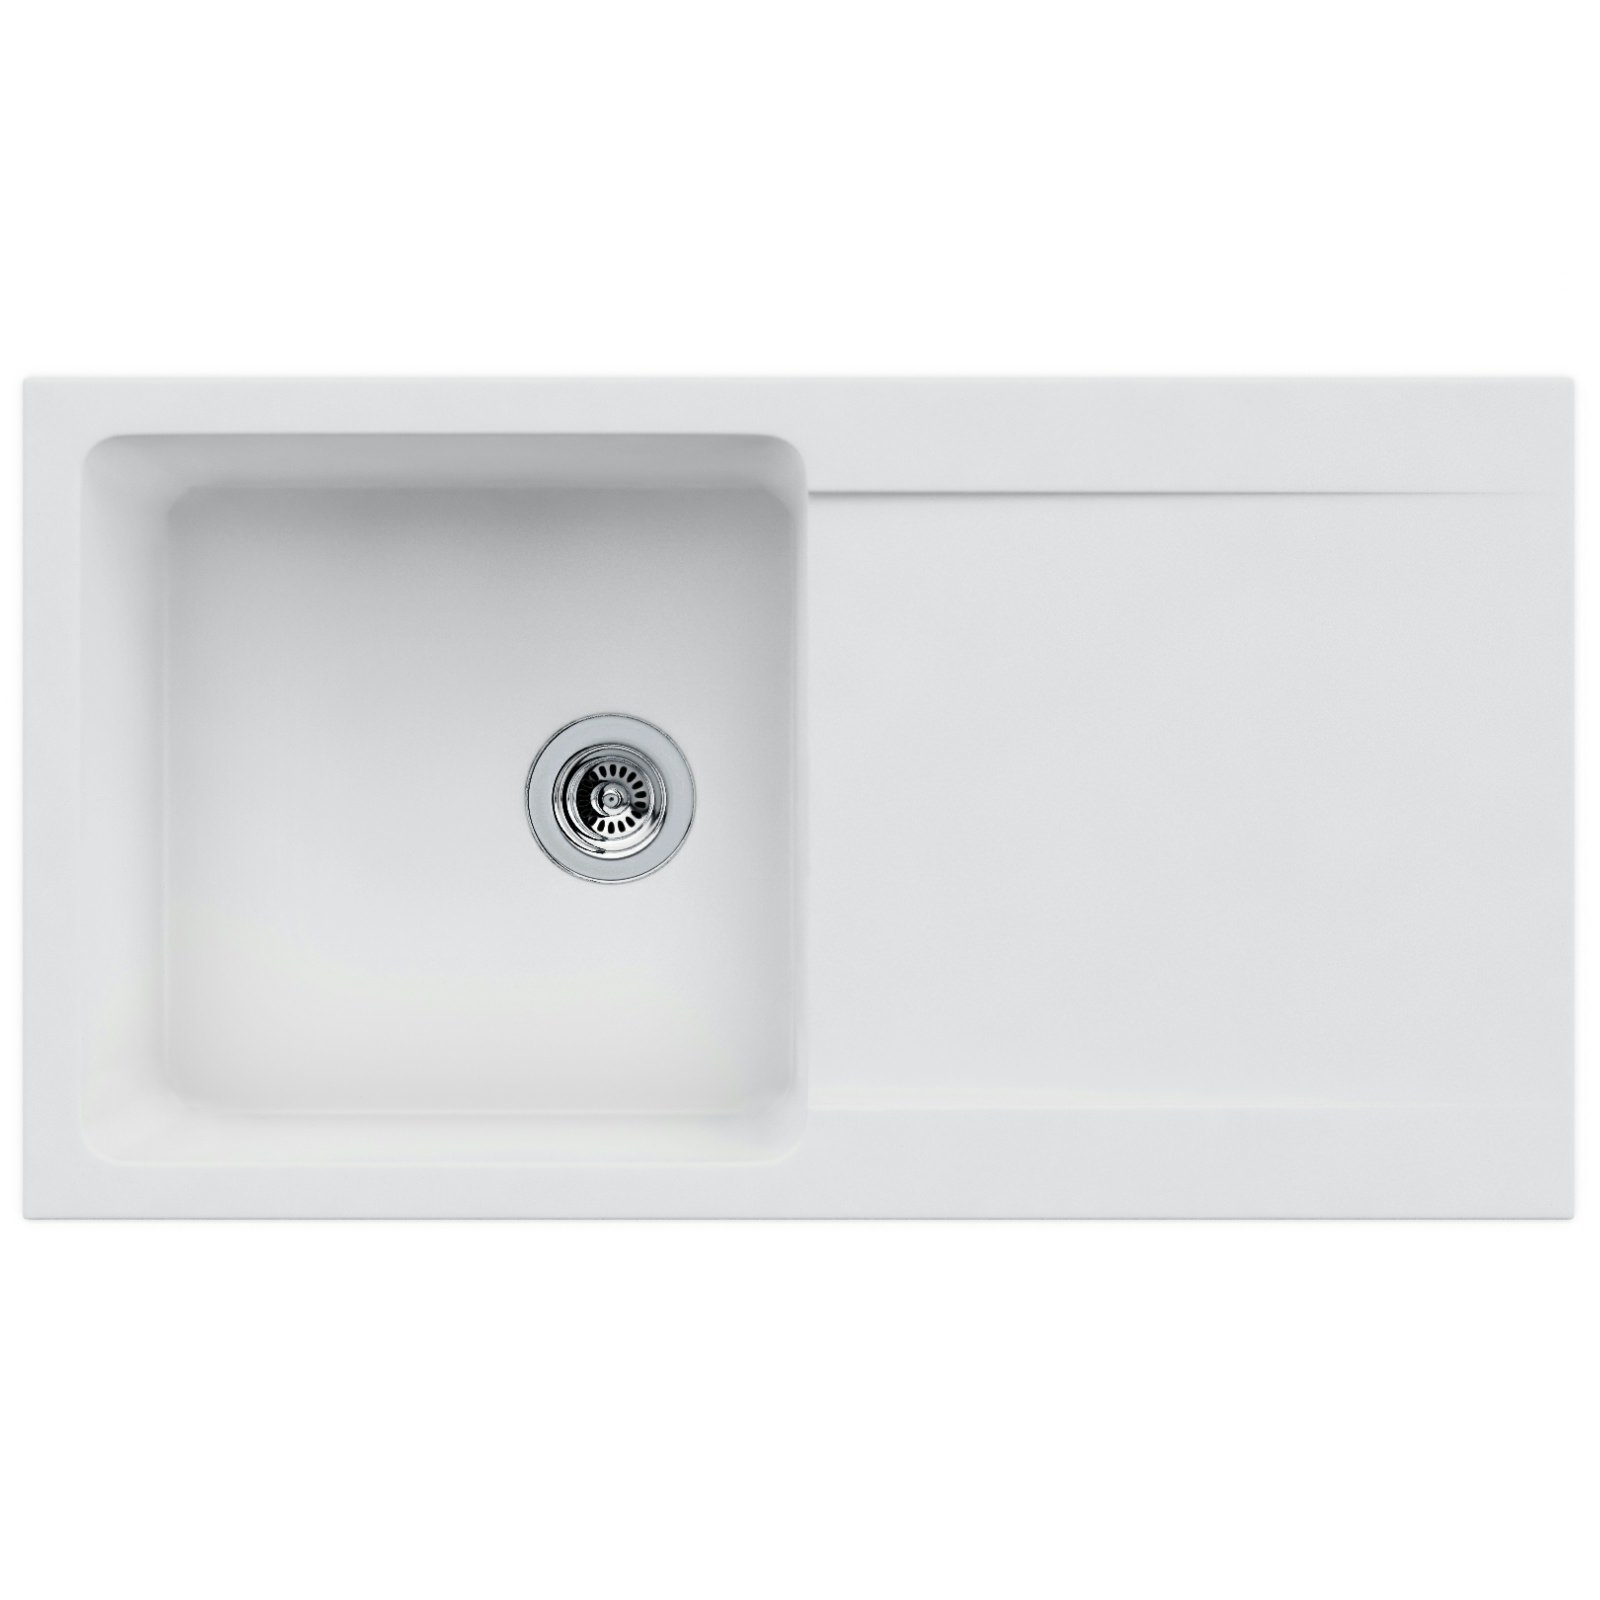 Franke Sink And Tap Packages : Franke Orion Propack OID 611-94 Tectonite Polar White Sink And Tap ...